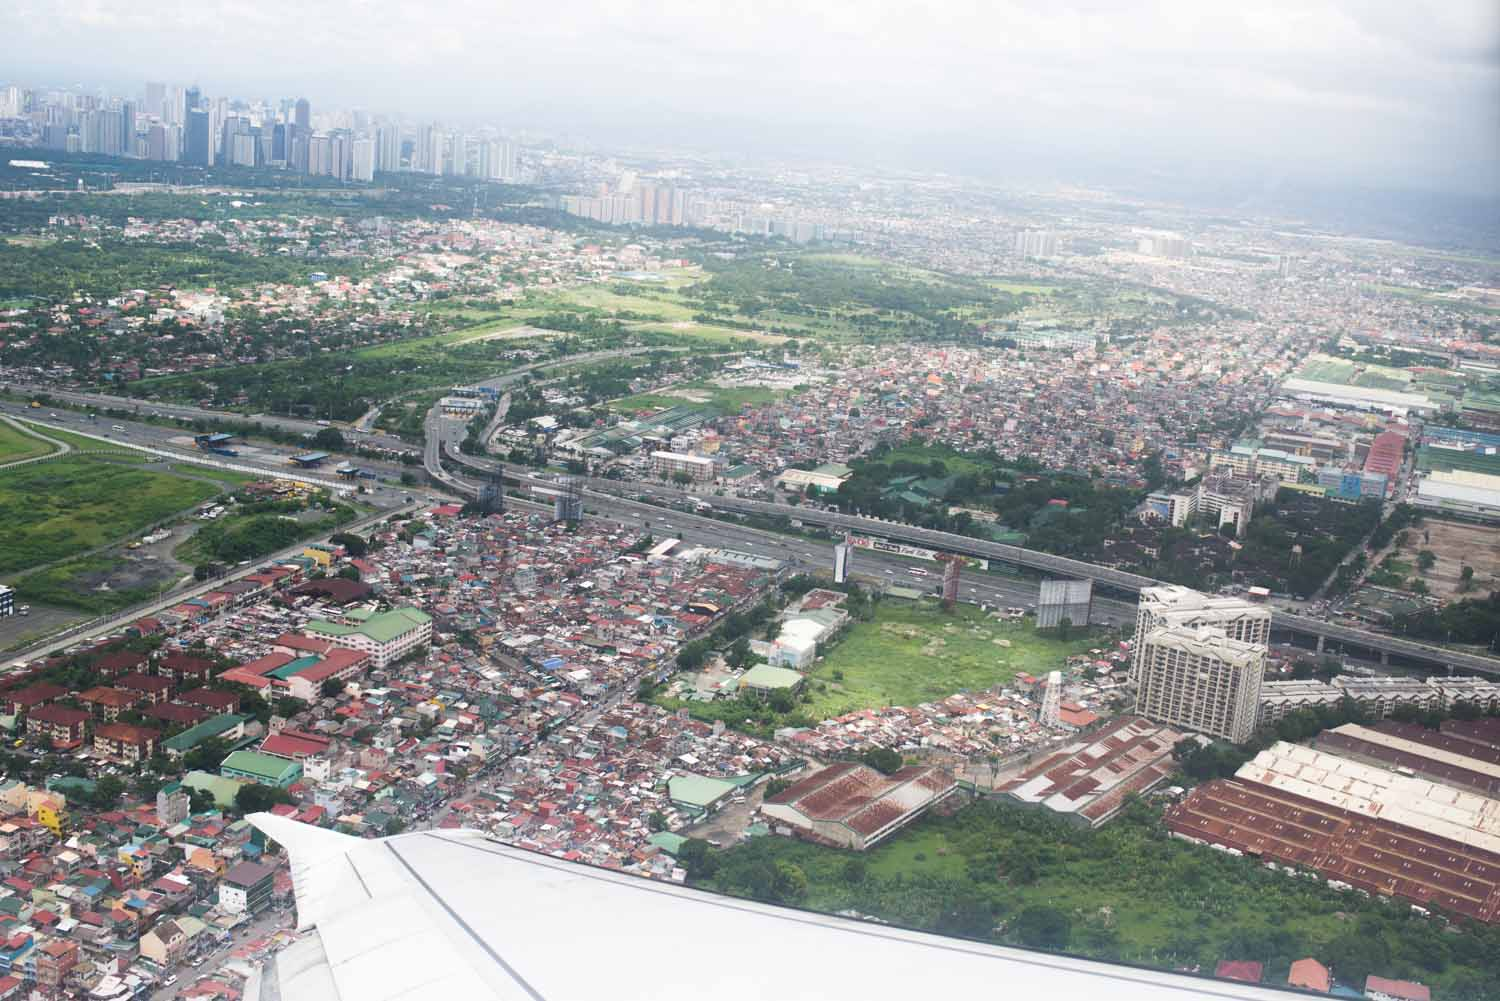 Arial view of Manila